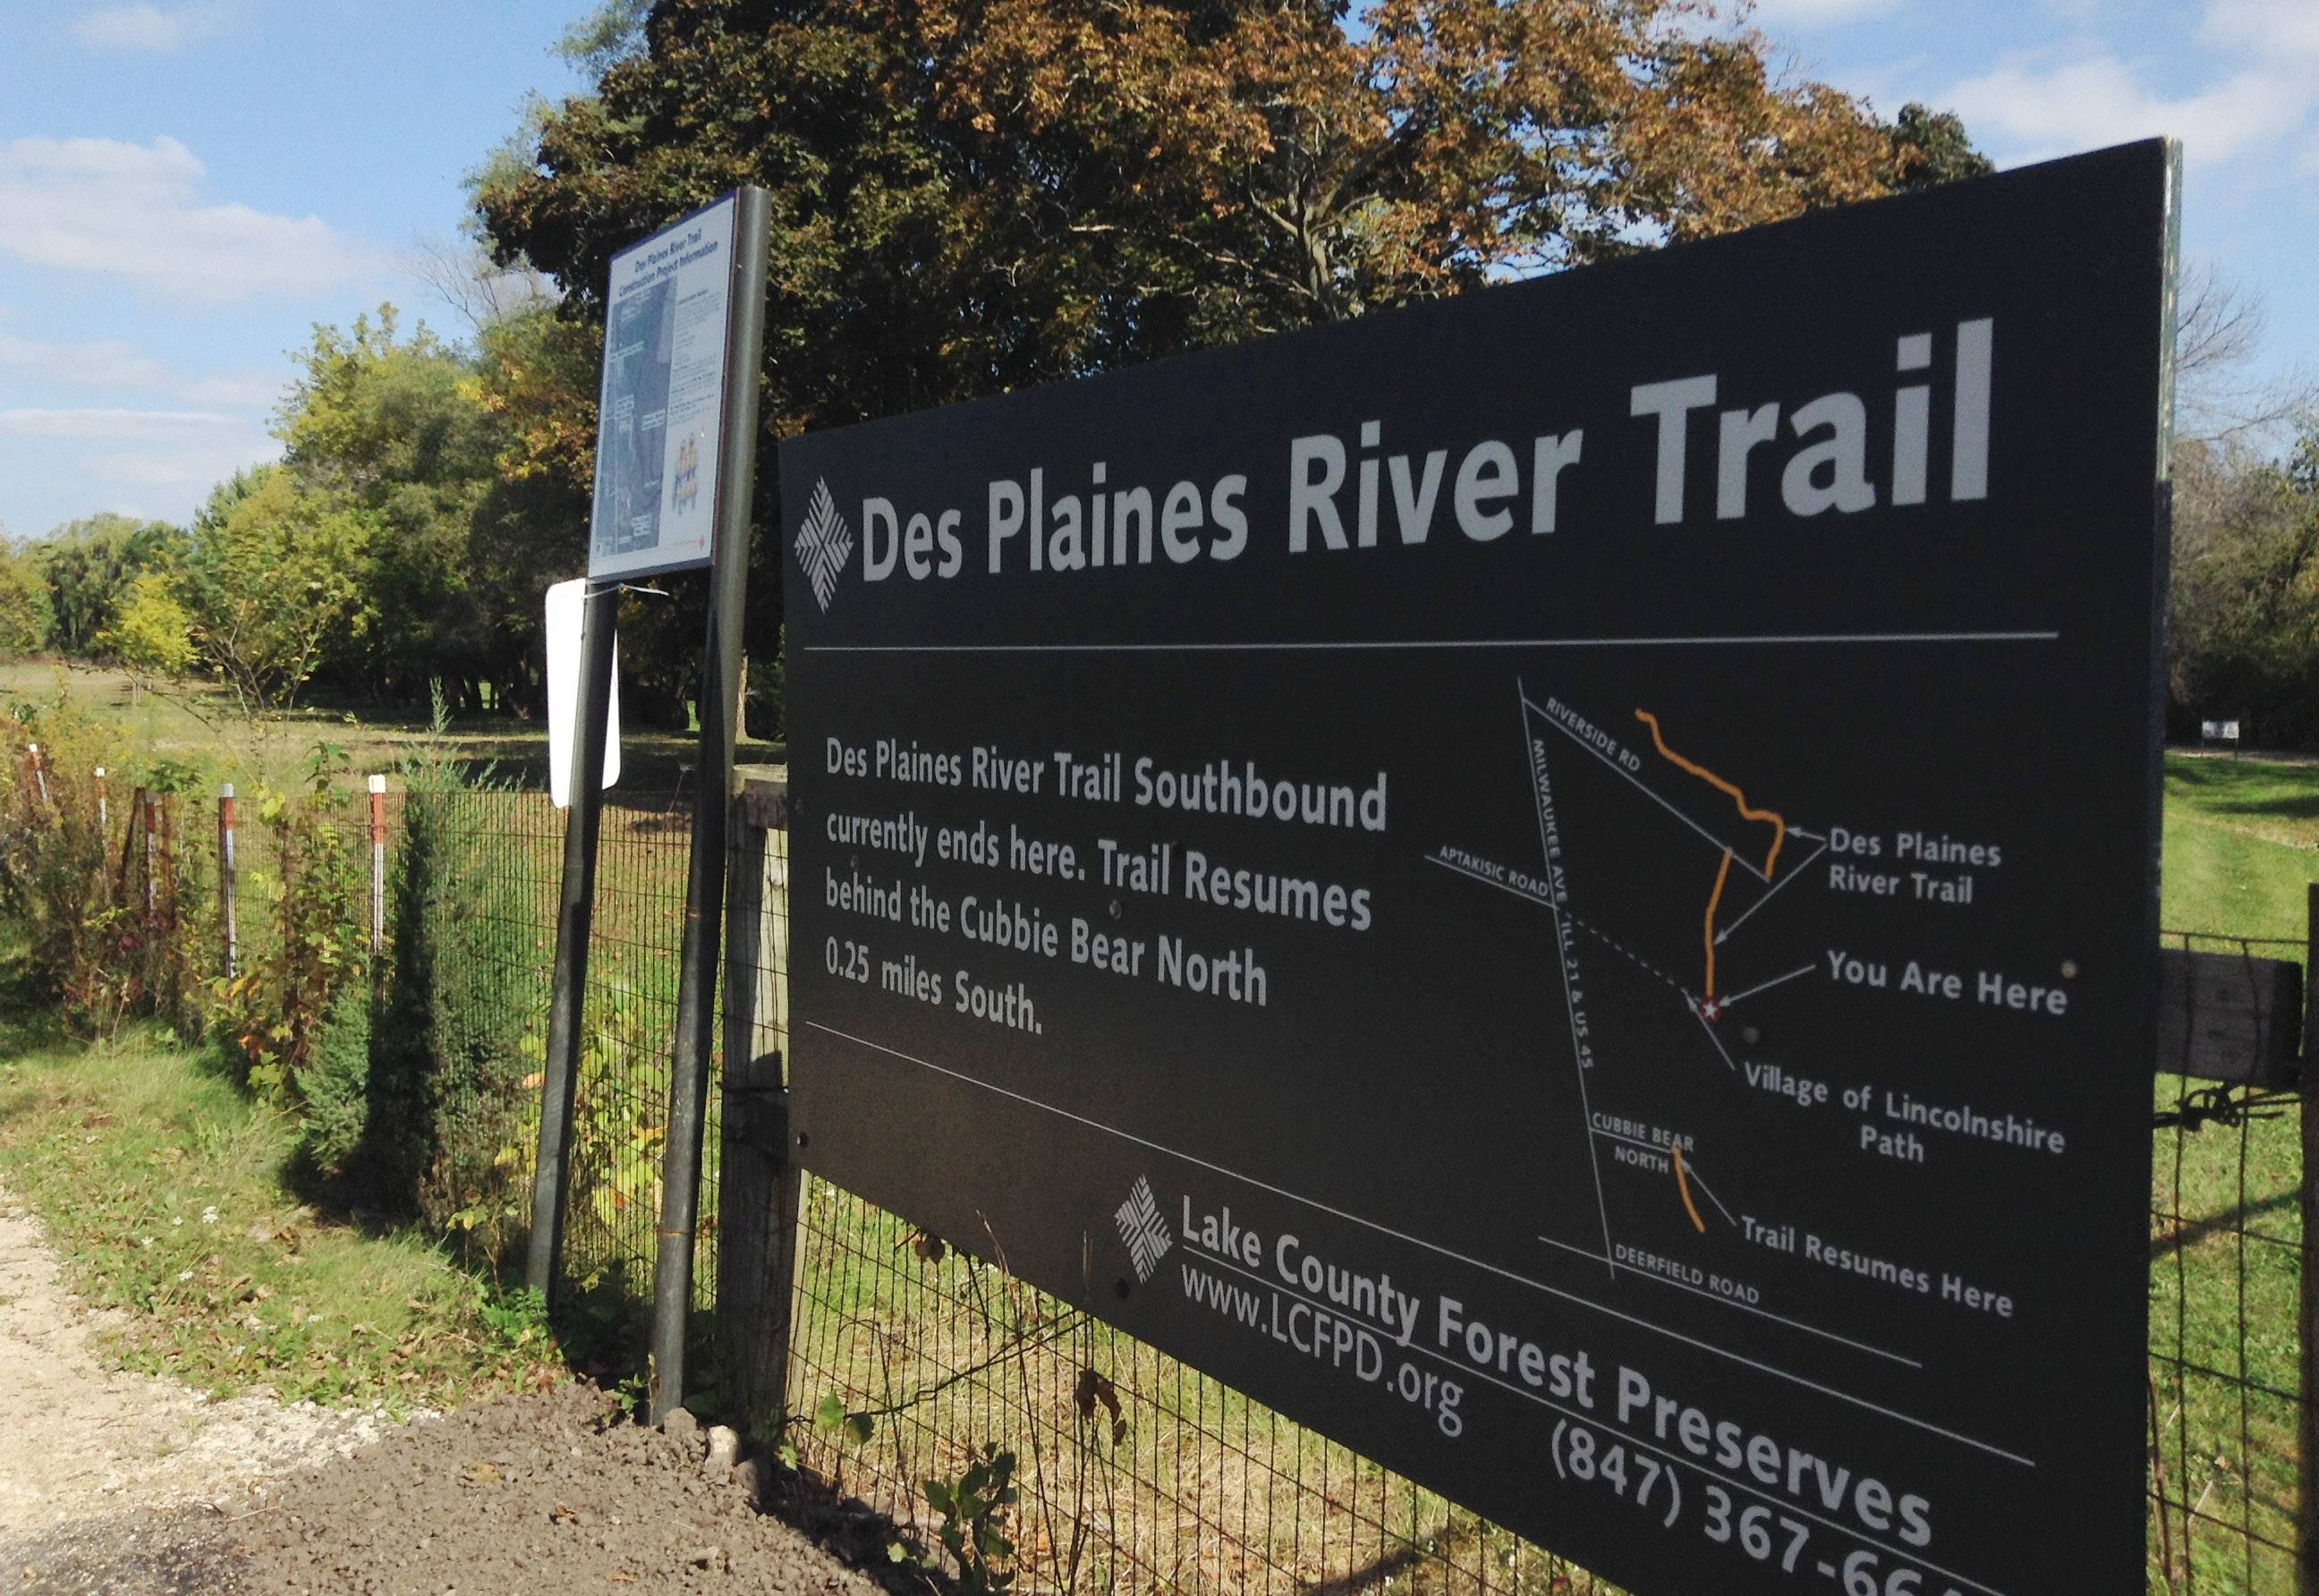 Last piece of Des Plaines River Trail is in place